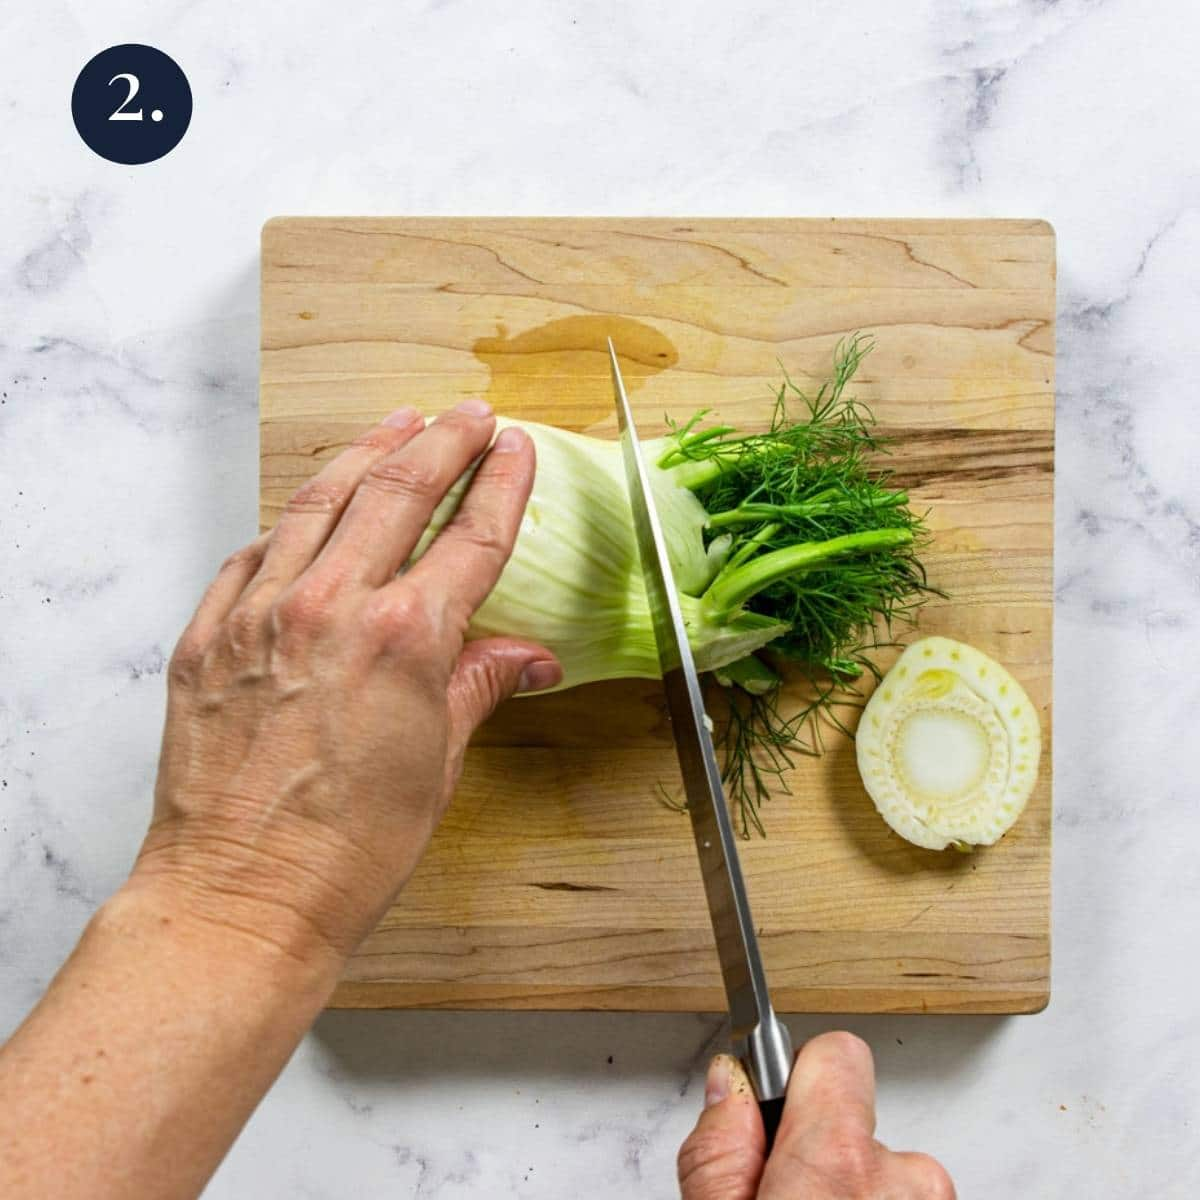 cutting stems and fronds from fennel